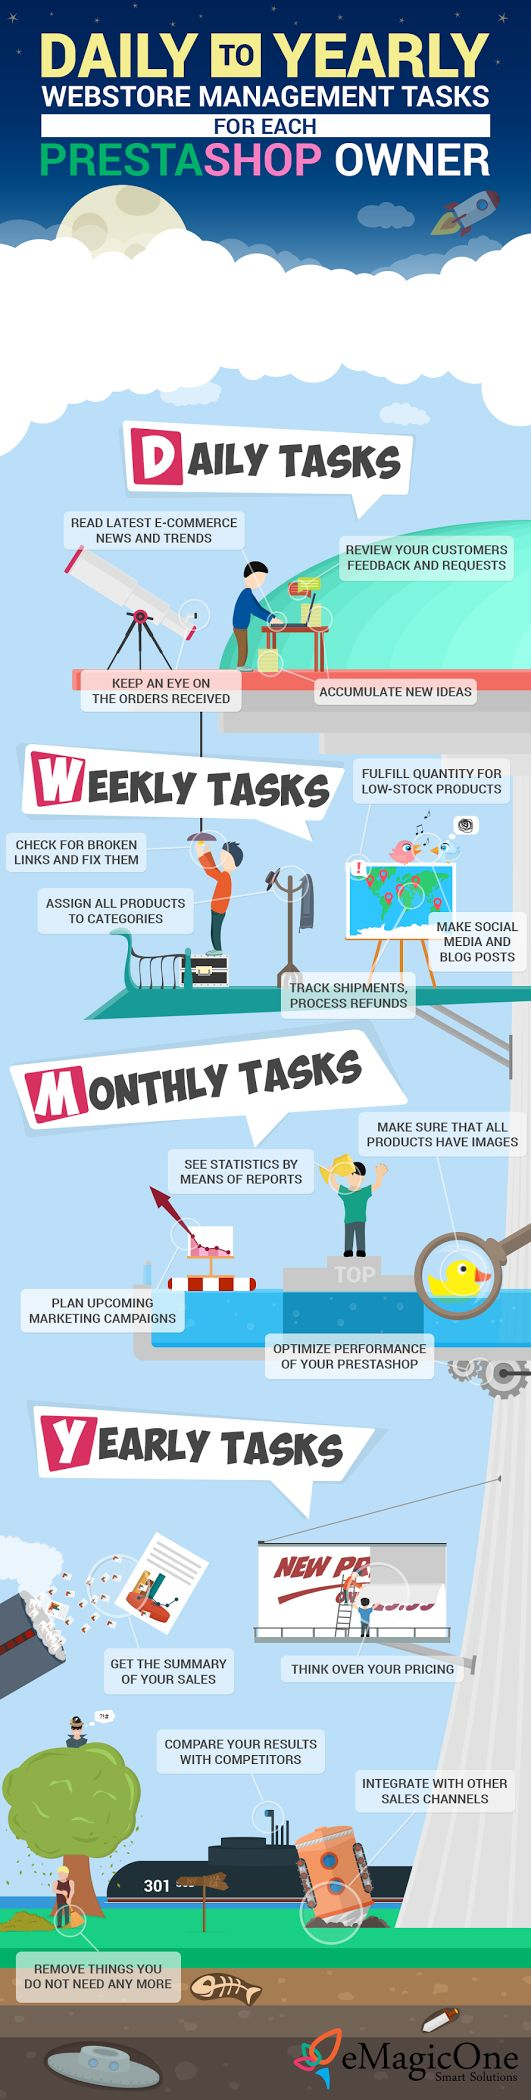 Daily to Yearly Webstore Management Tasks for Each PrestaShop Owner | #Infographic #Prestashop